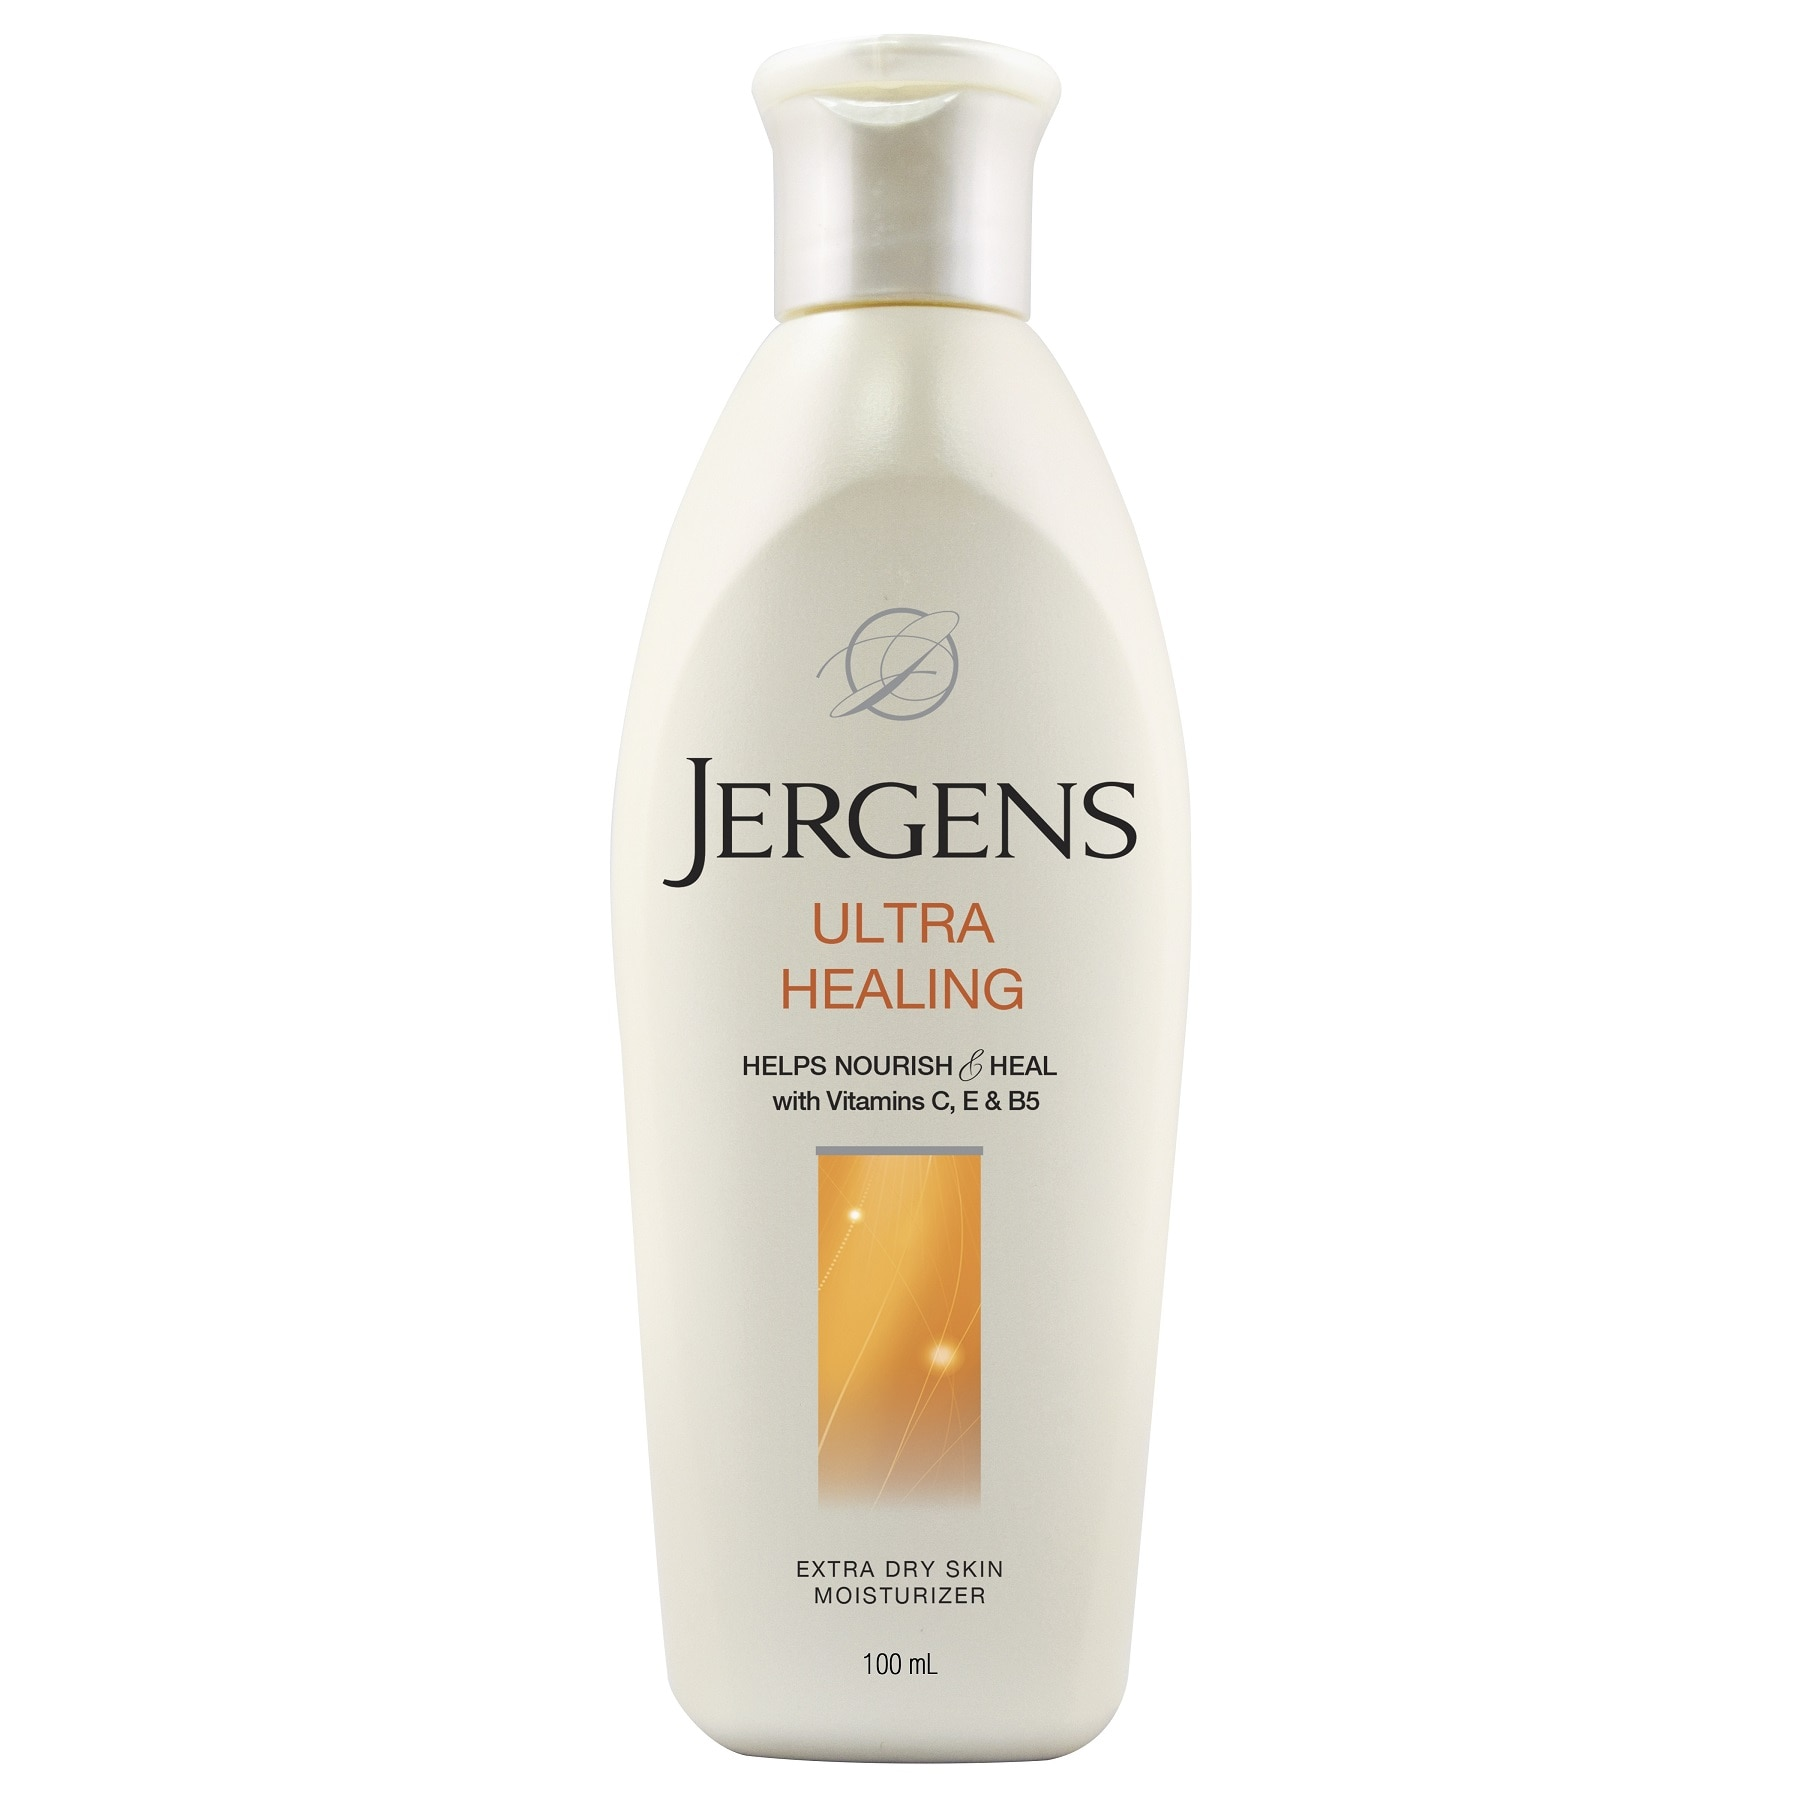 JERGENSUltra Healing Extra Dry Skin Moisturizer 100ml,For WomenHot Summer Drops